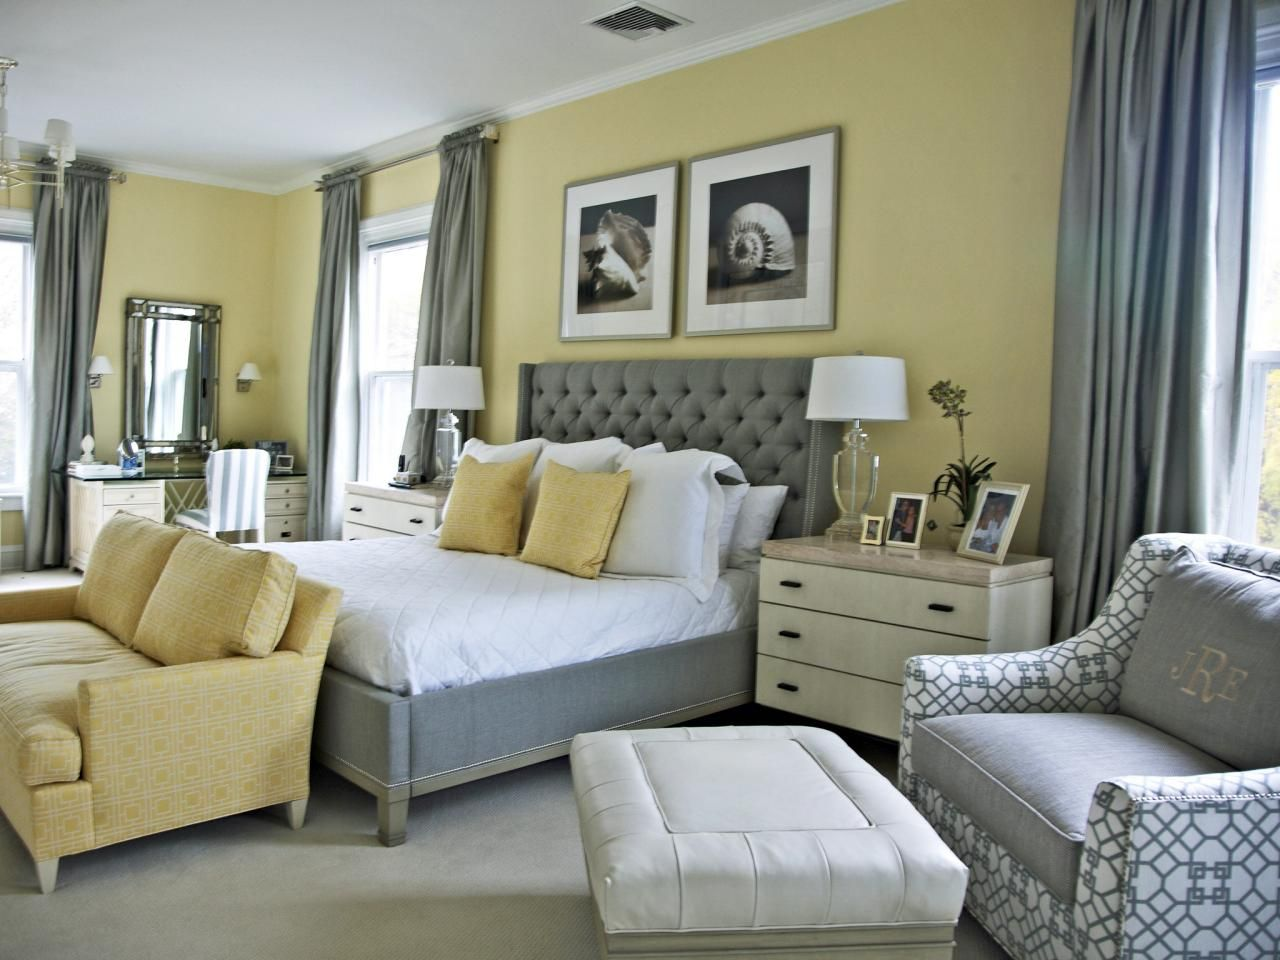 15 Cheery Yellow Bedrooms Grey Bedroom Design Yellow Bedroom Decor Light Yellow Bedrooms